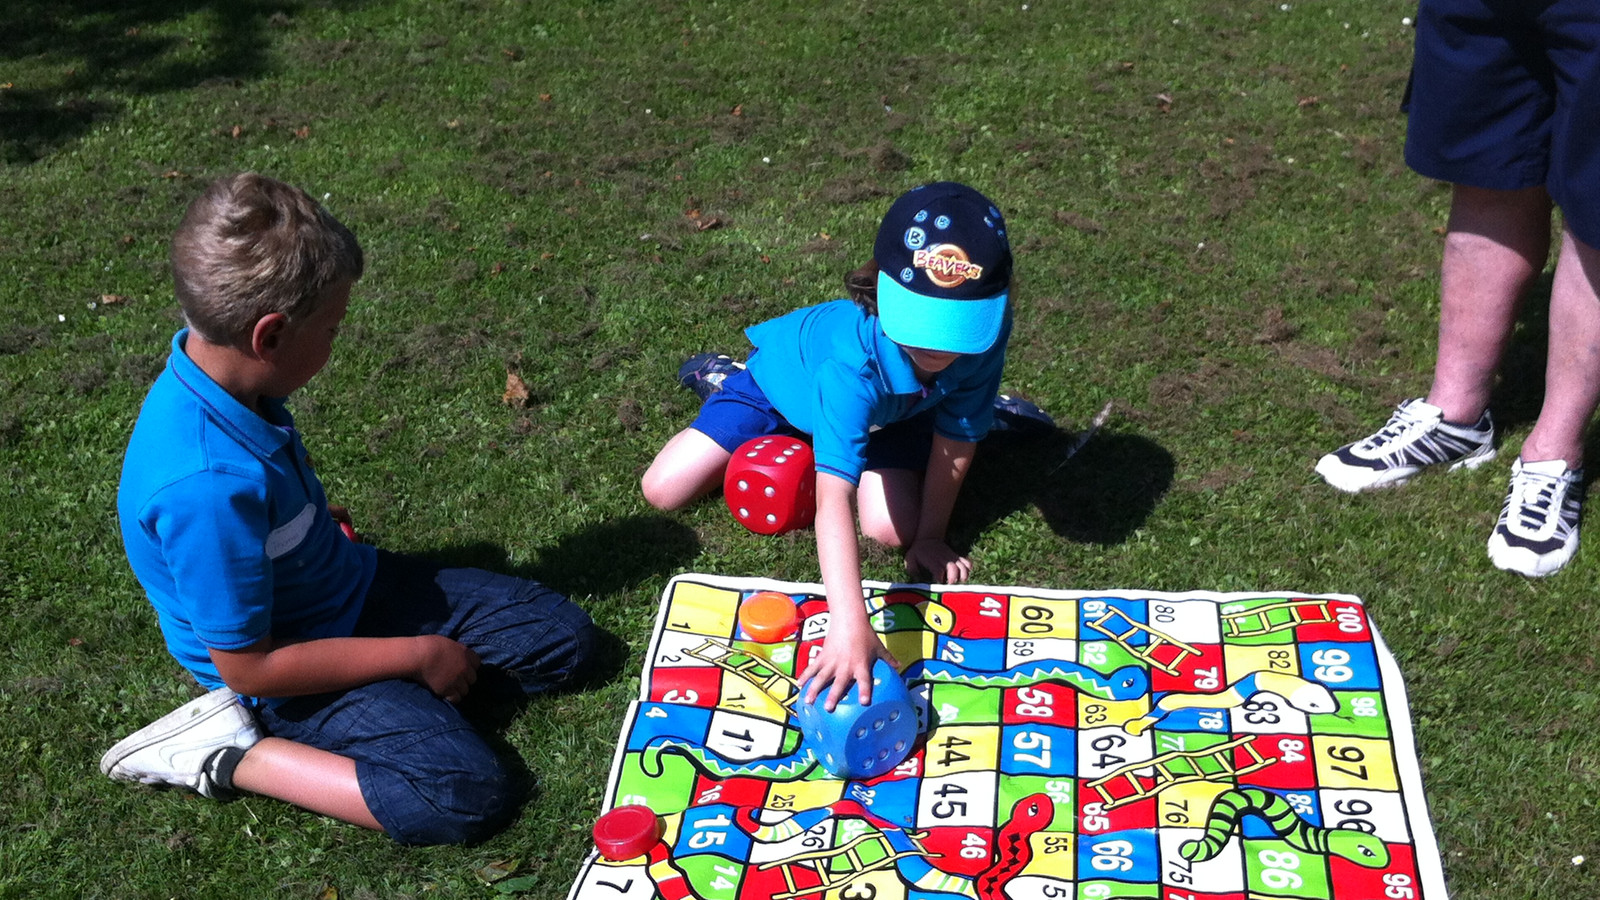 Playing Snakes And Ladders